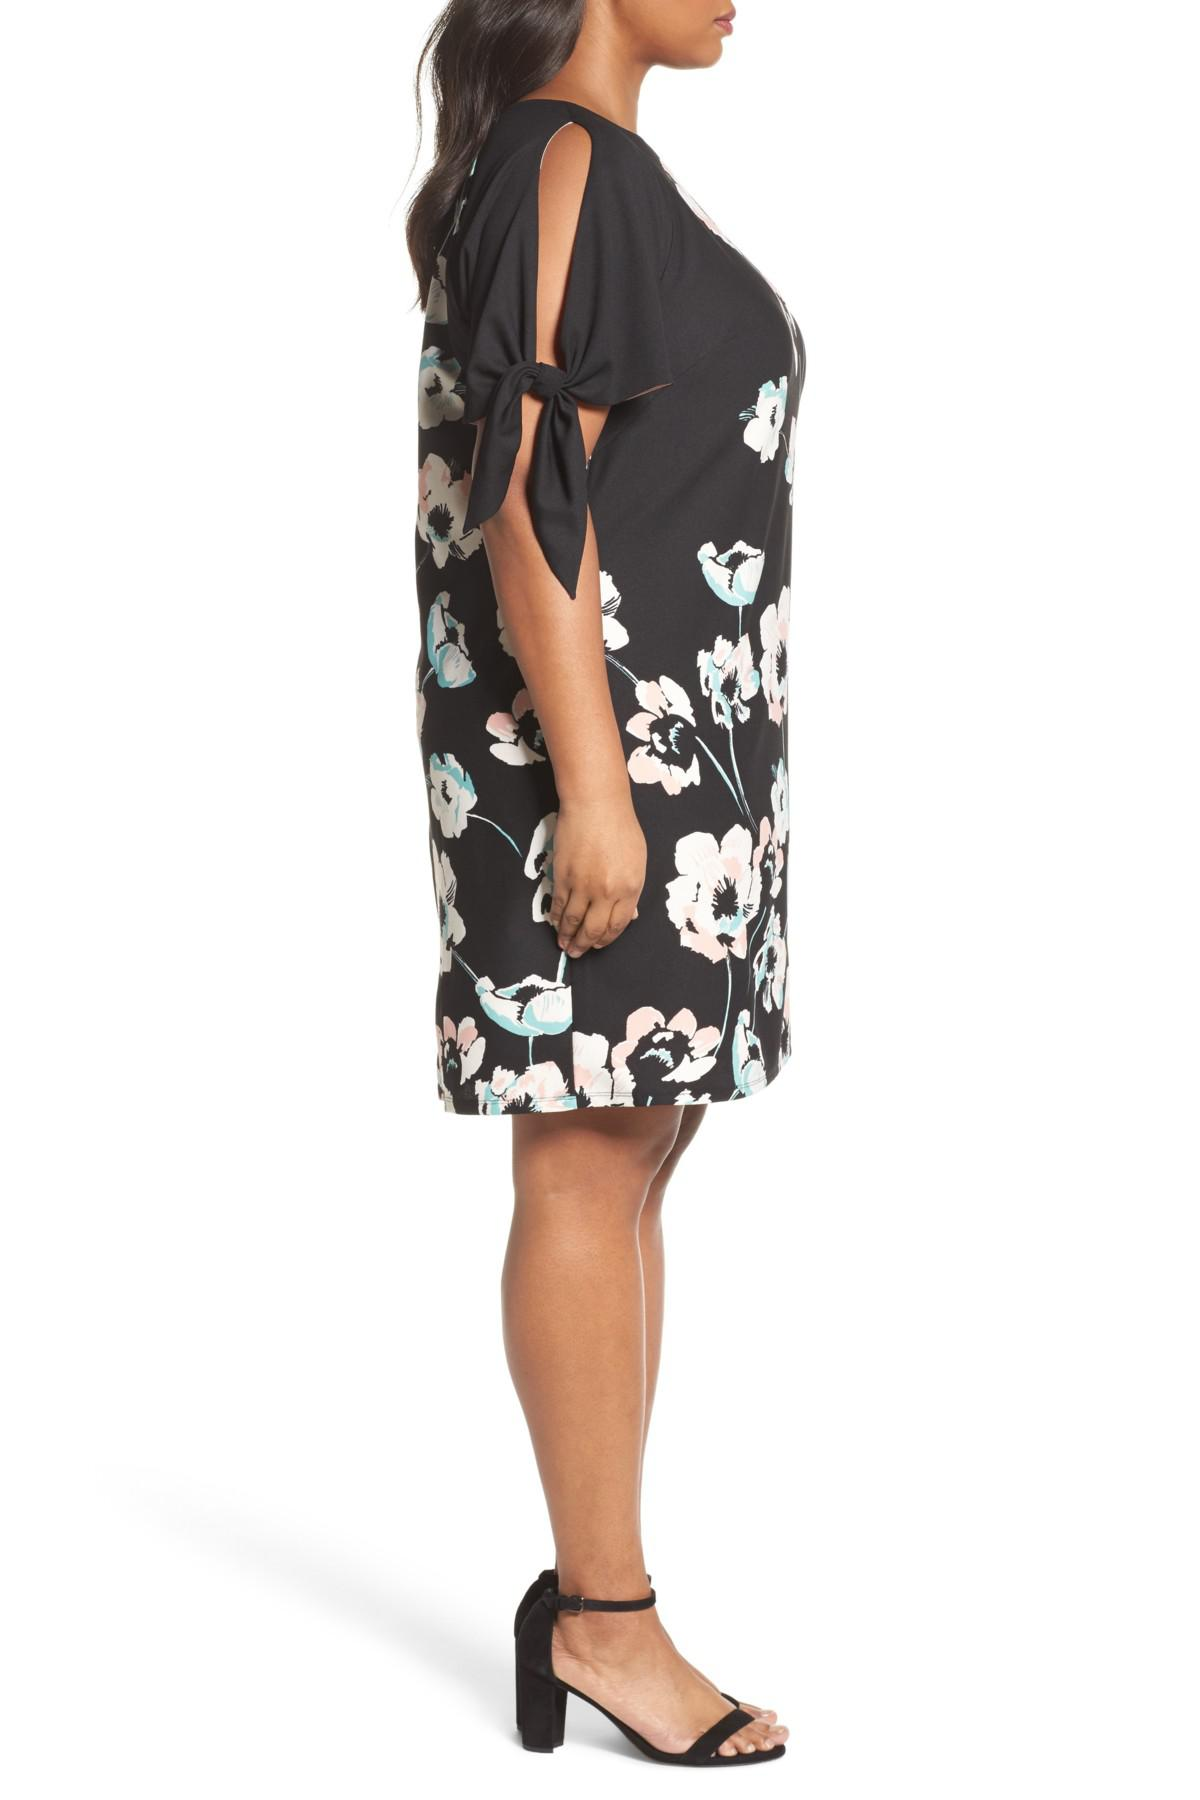 5728bf59271 Lyst - Vince Camuto Slit Sleeve Floral Shift Dress (plus Size) in Black